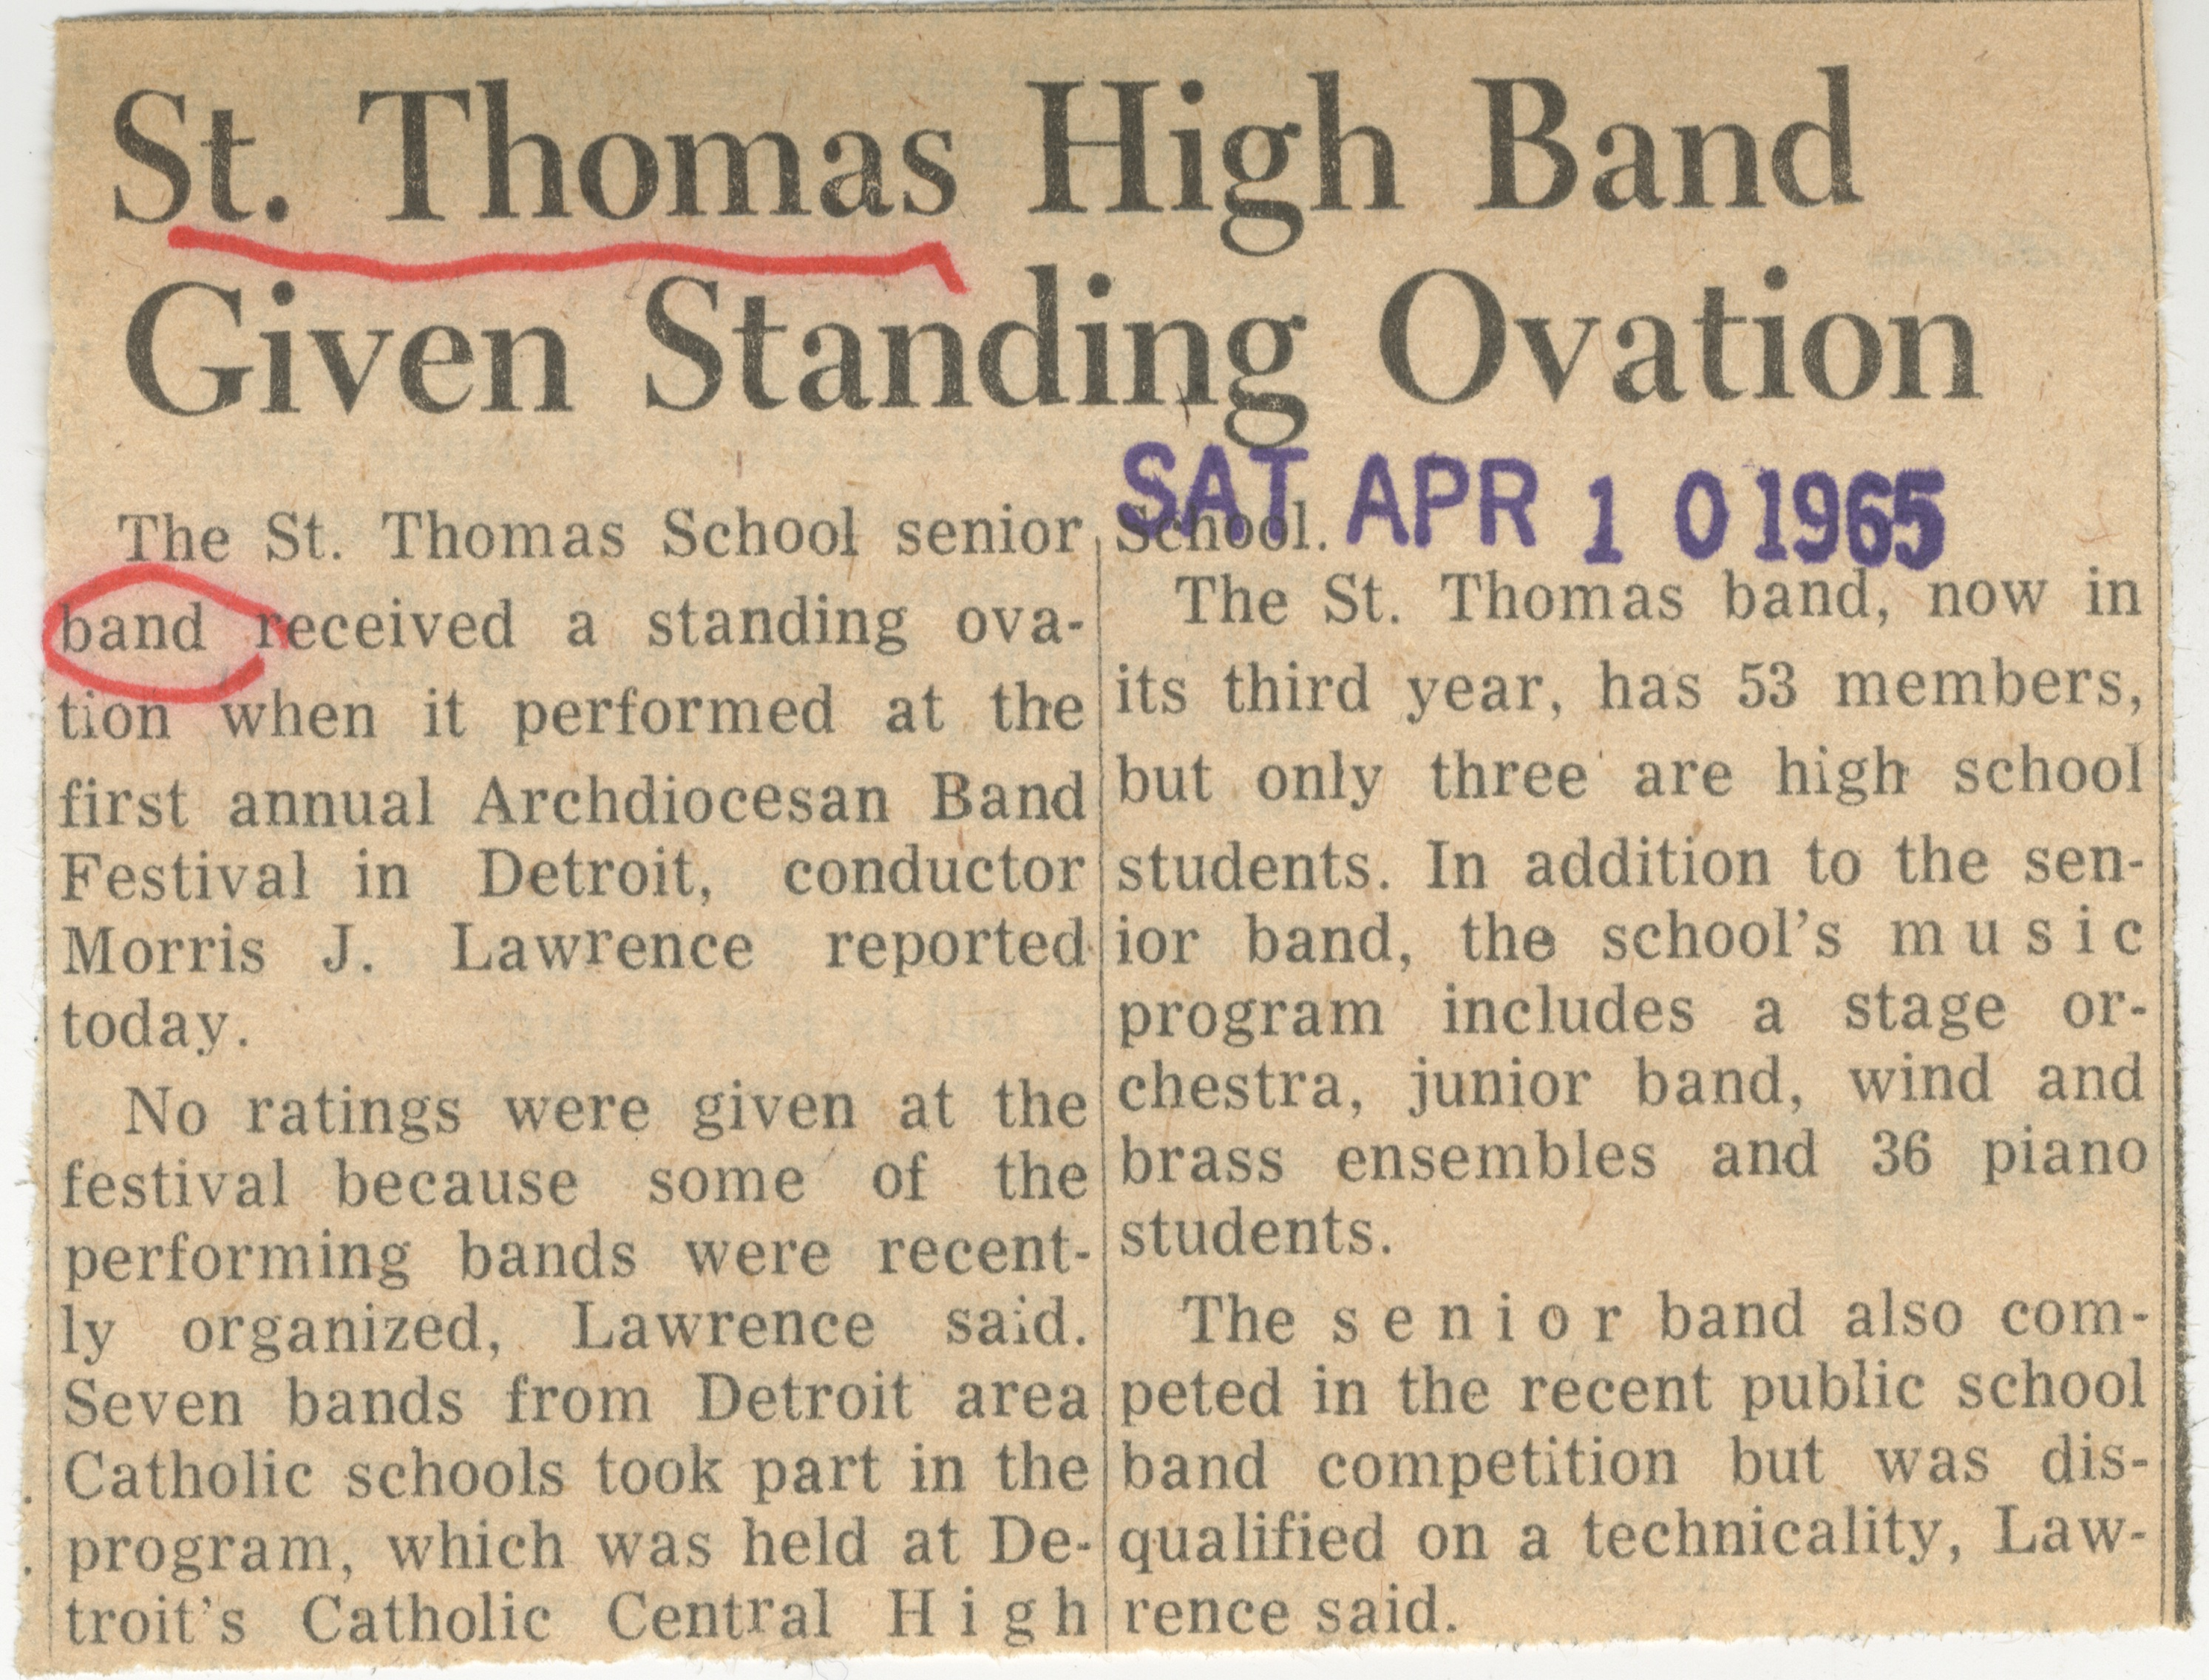 St.Thomas High Band Given Standing Ovation image